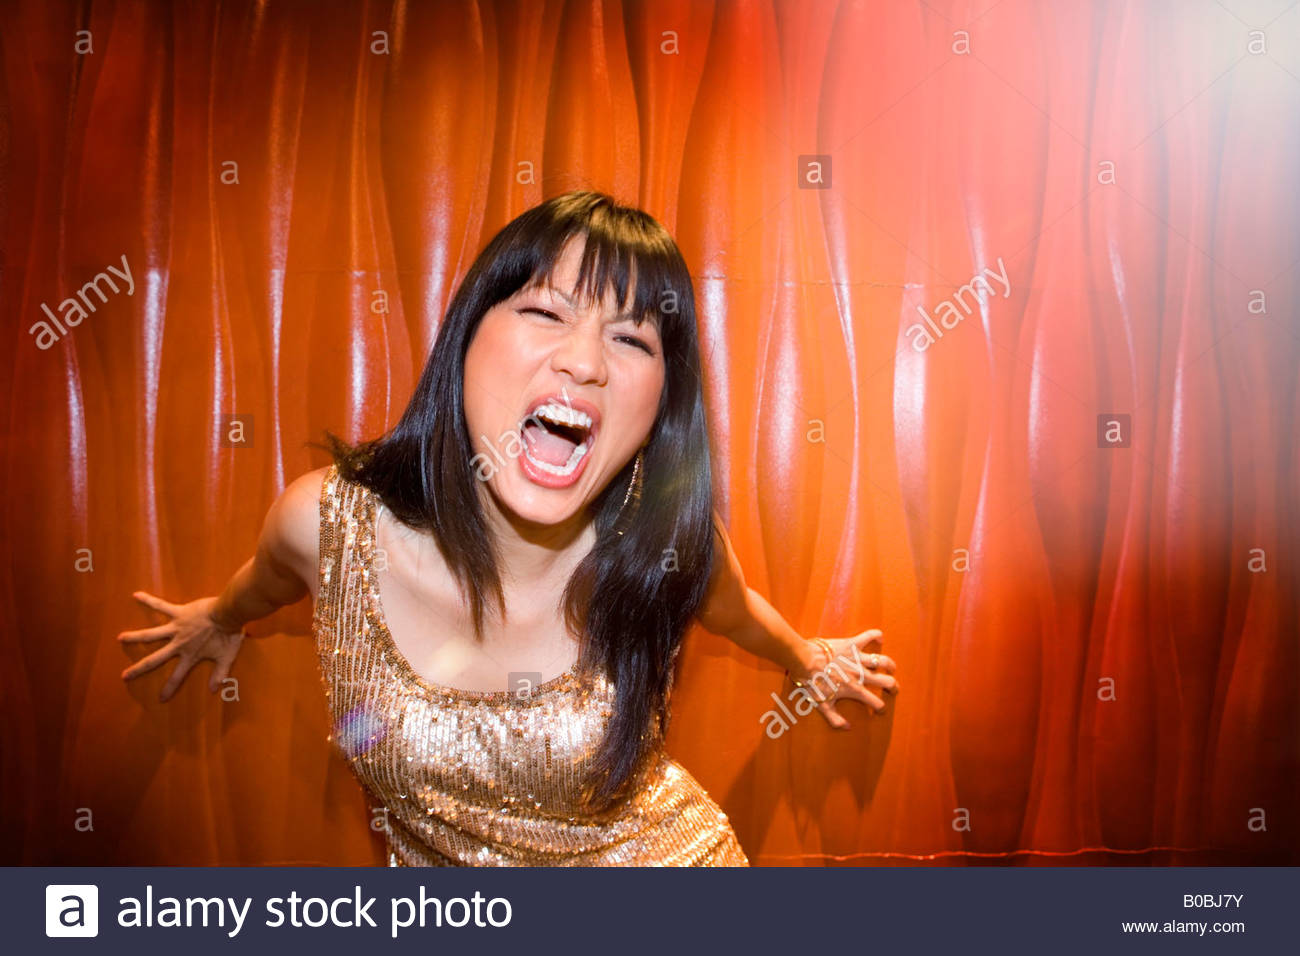 Young woman in spotlight making face, close-up - Stock Image